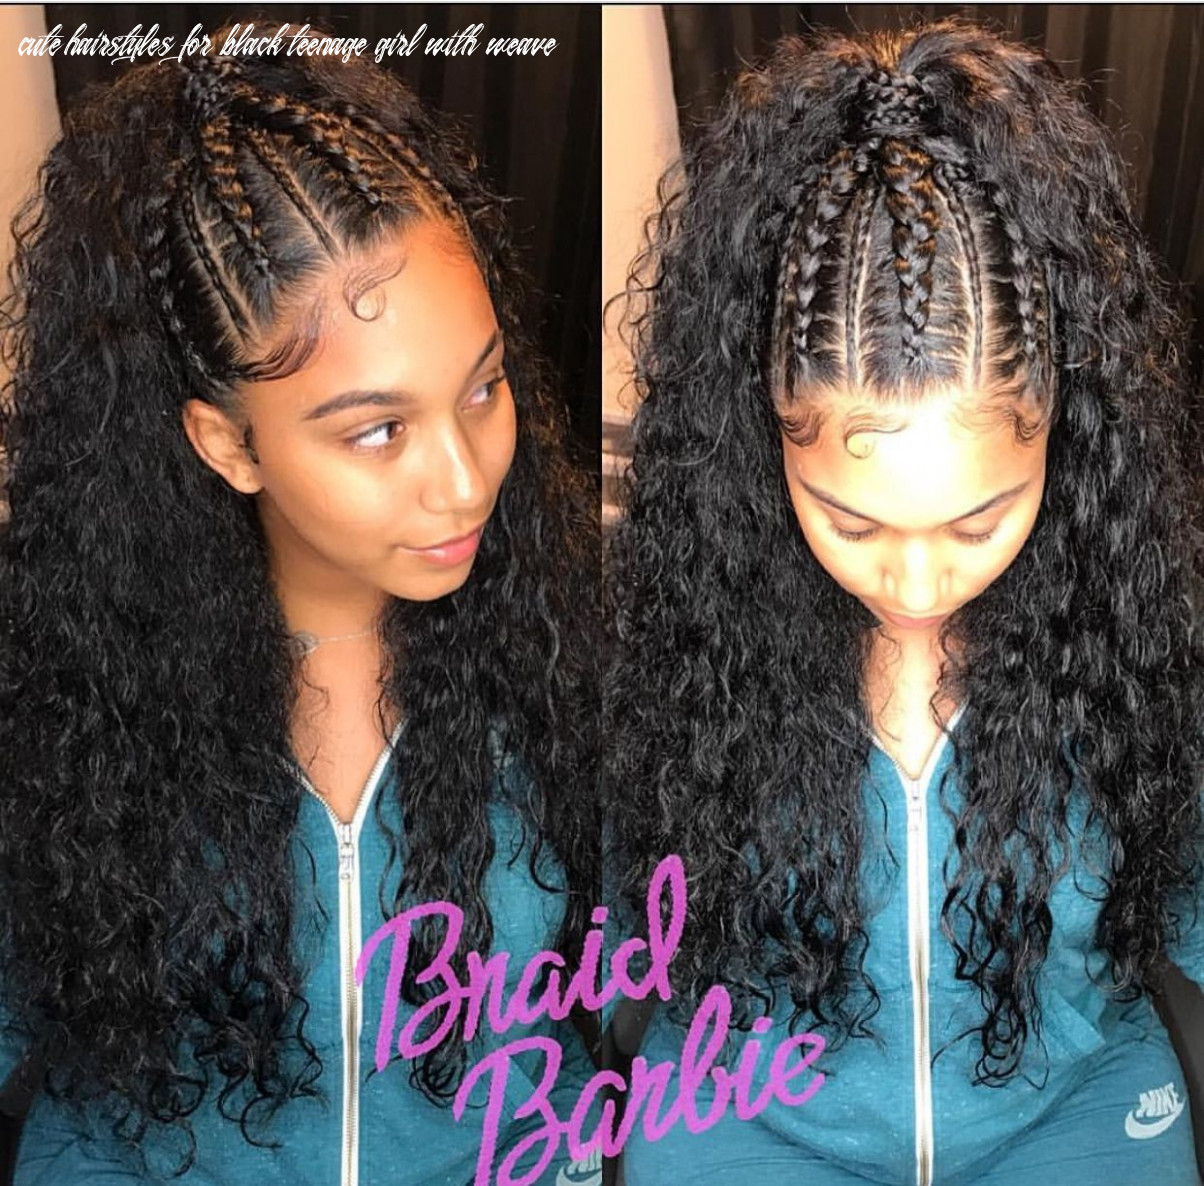 Pin on natural hairstyles cute hairstyles for black teenage girl with weave